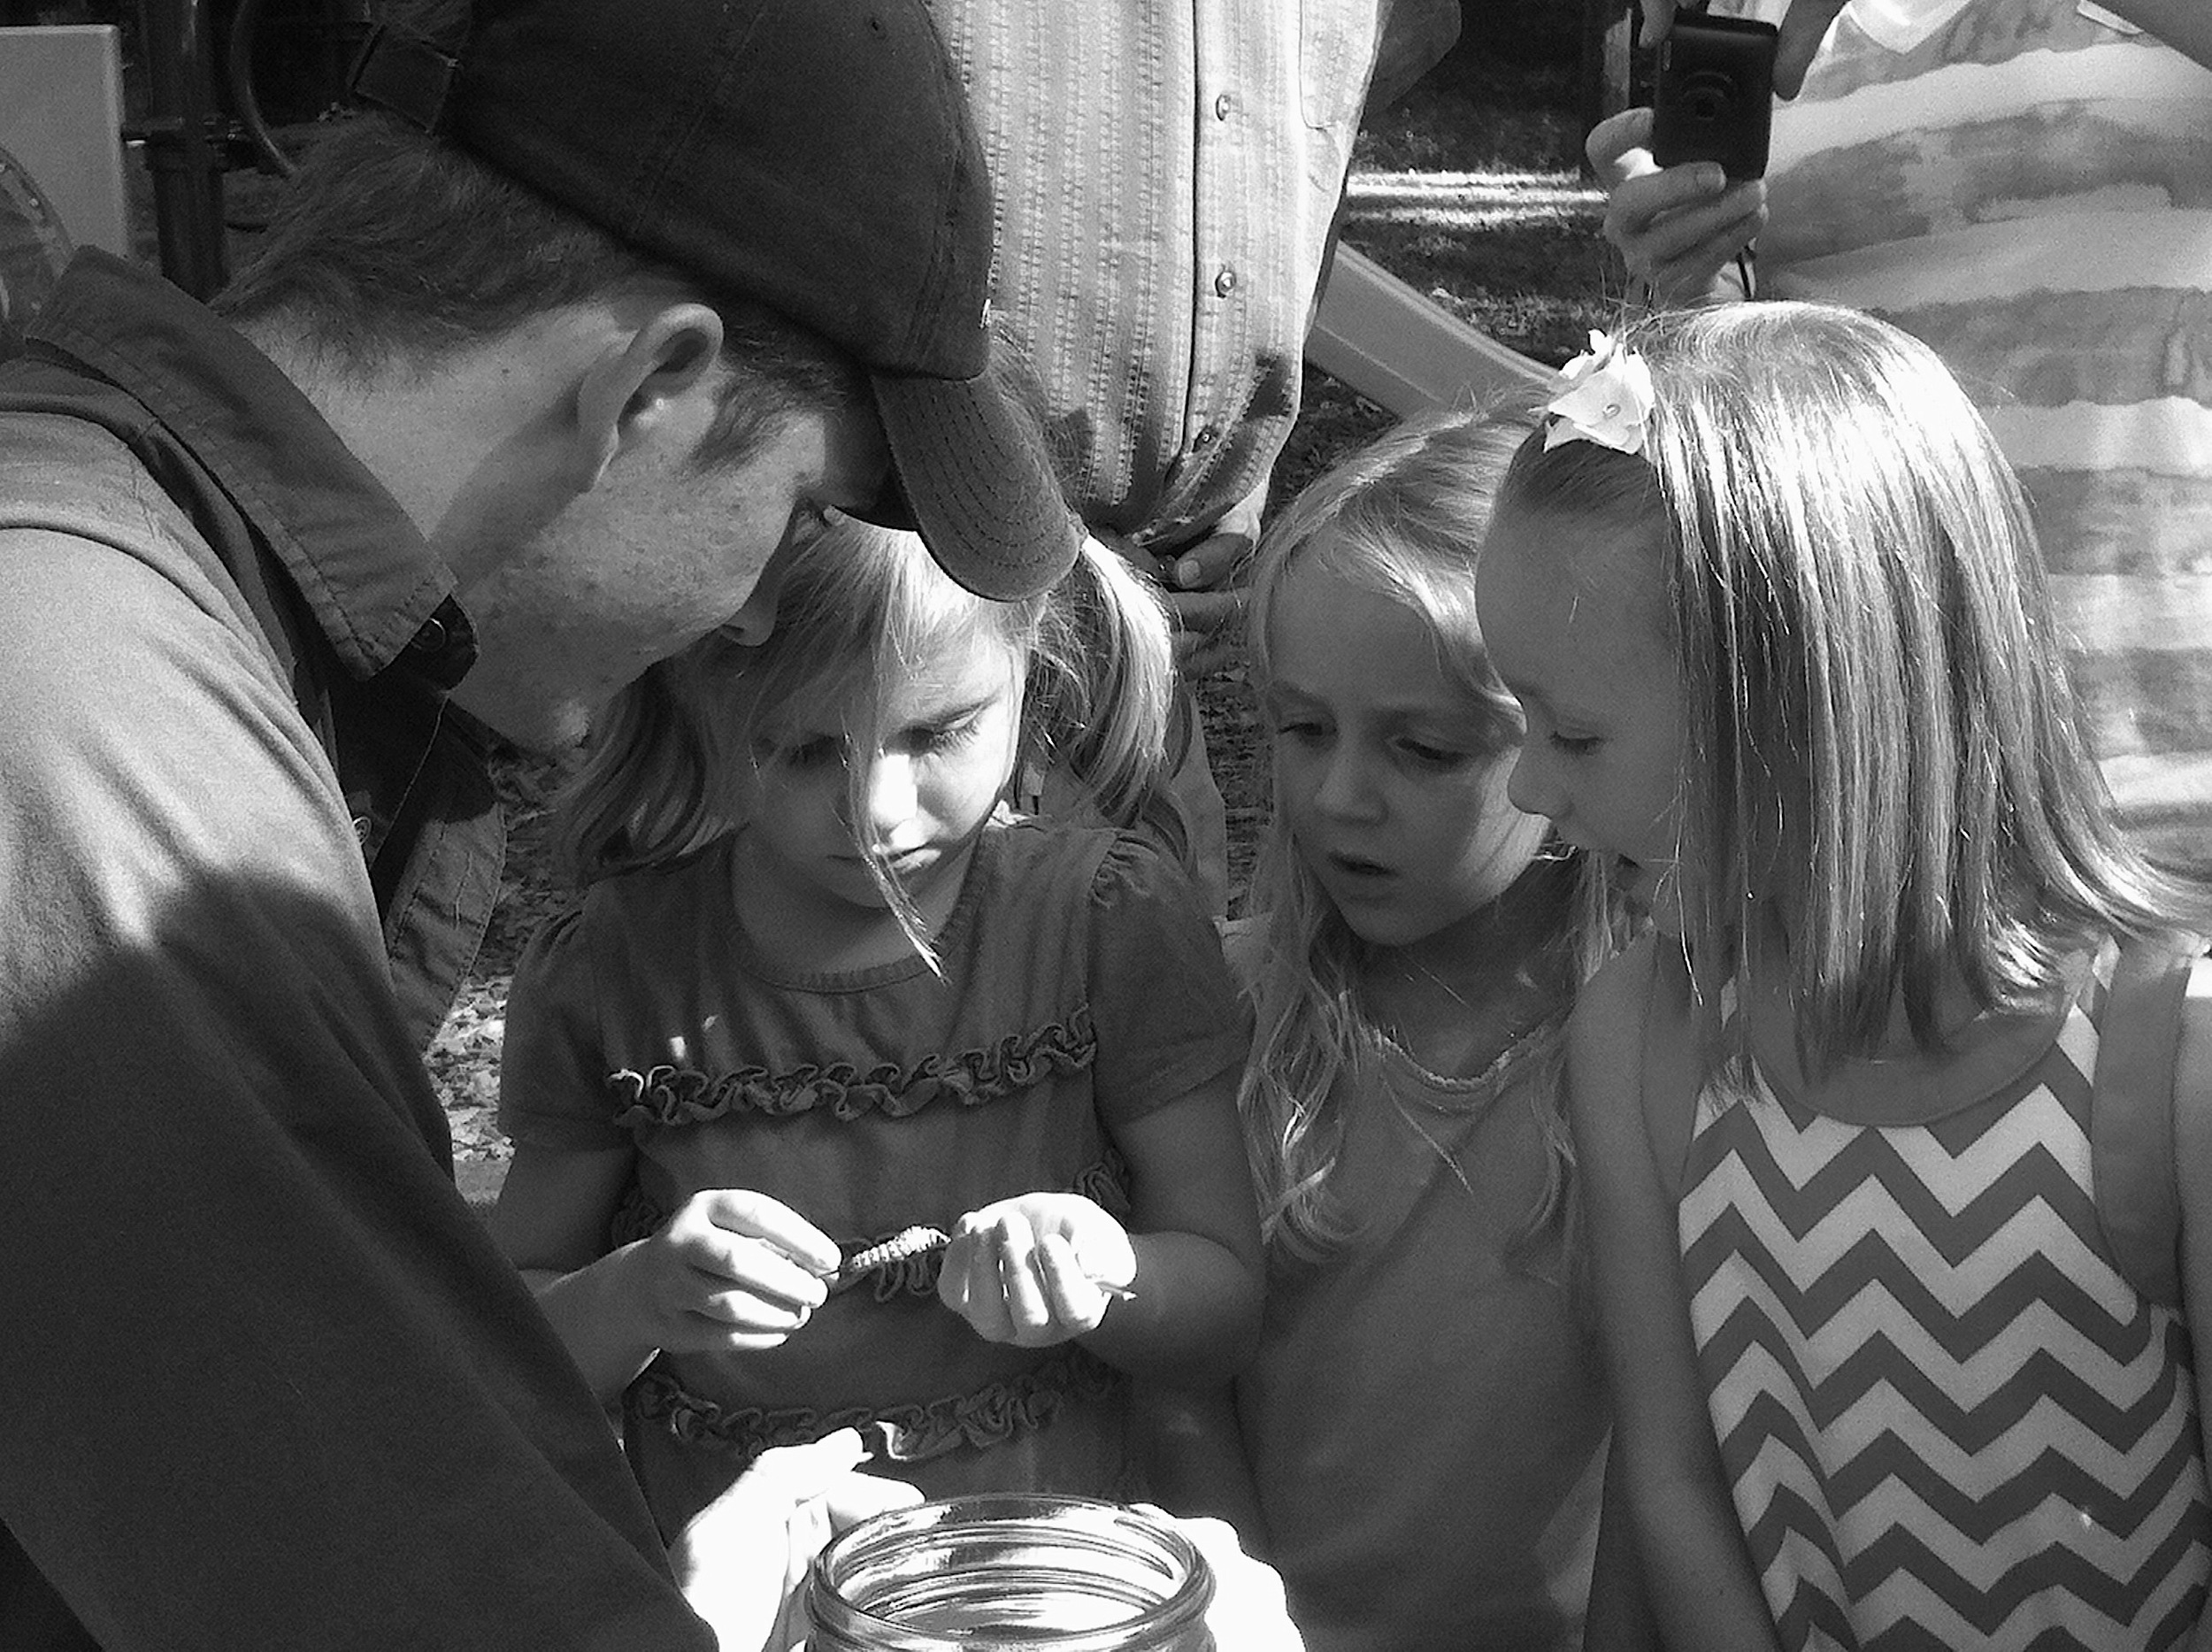 Holding live butterflies at a bug themed birthday party.